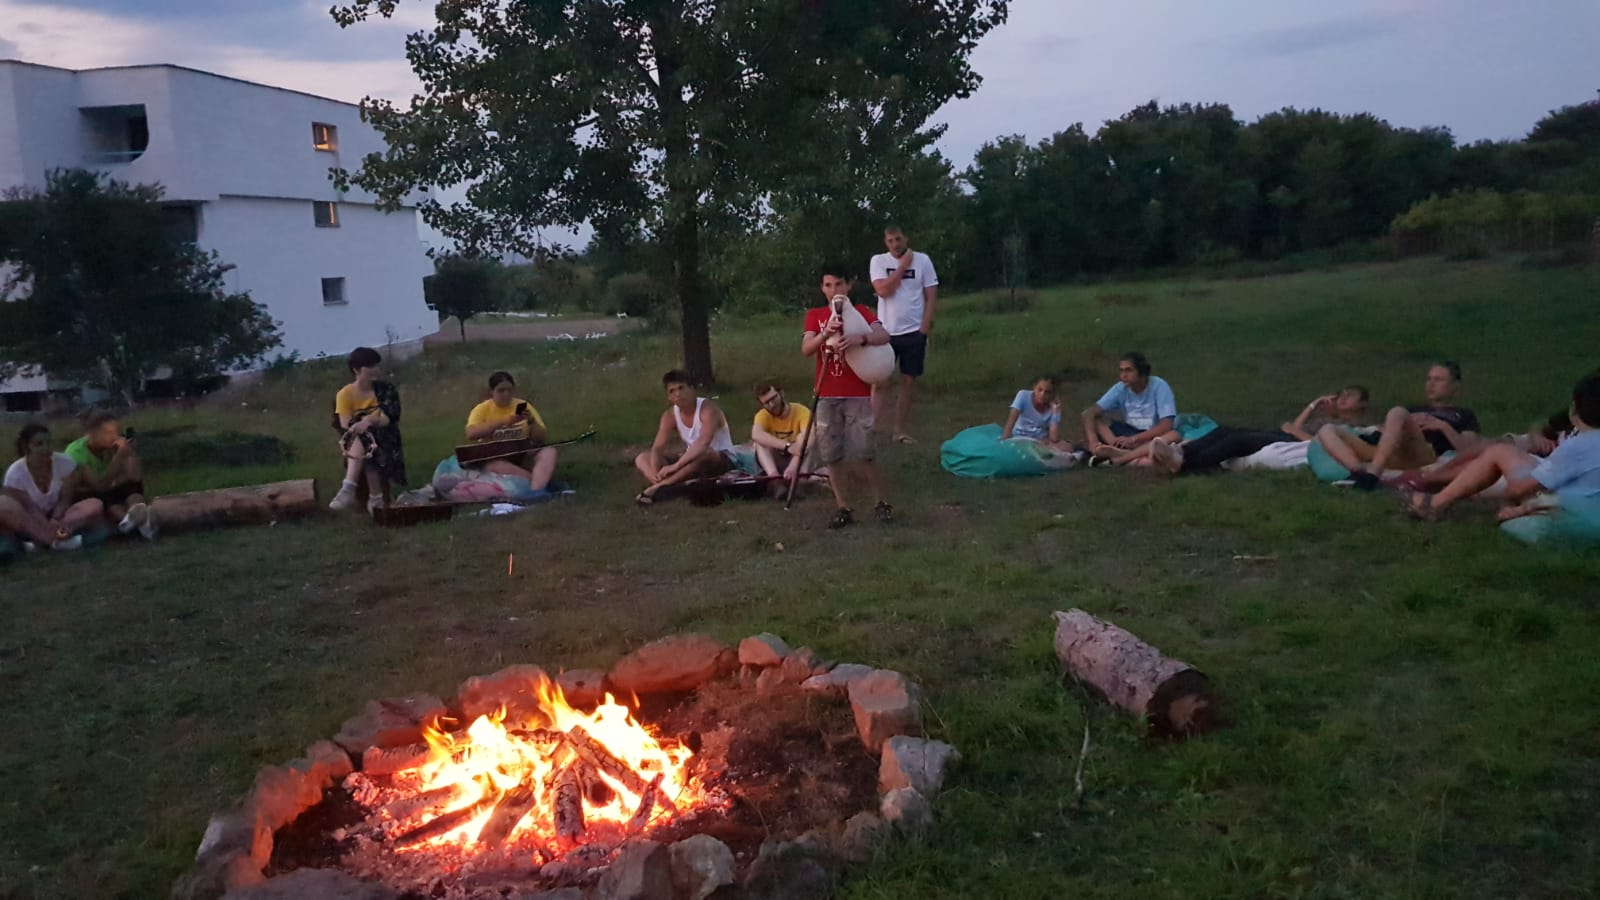 Z camp, day 4 - camp fire and boy with bagpipe